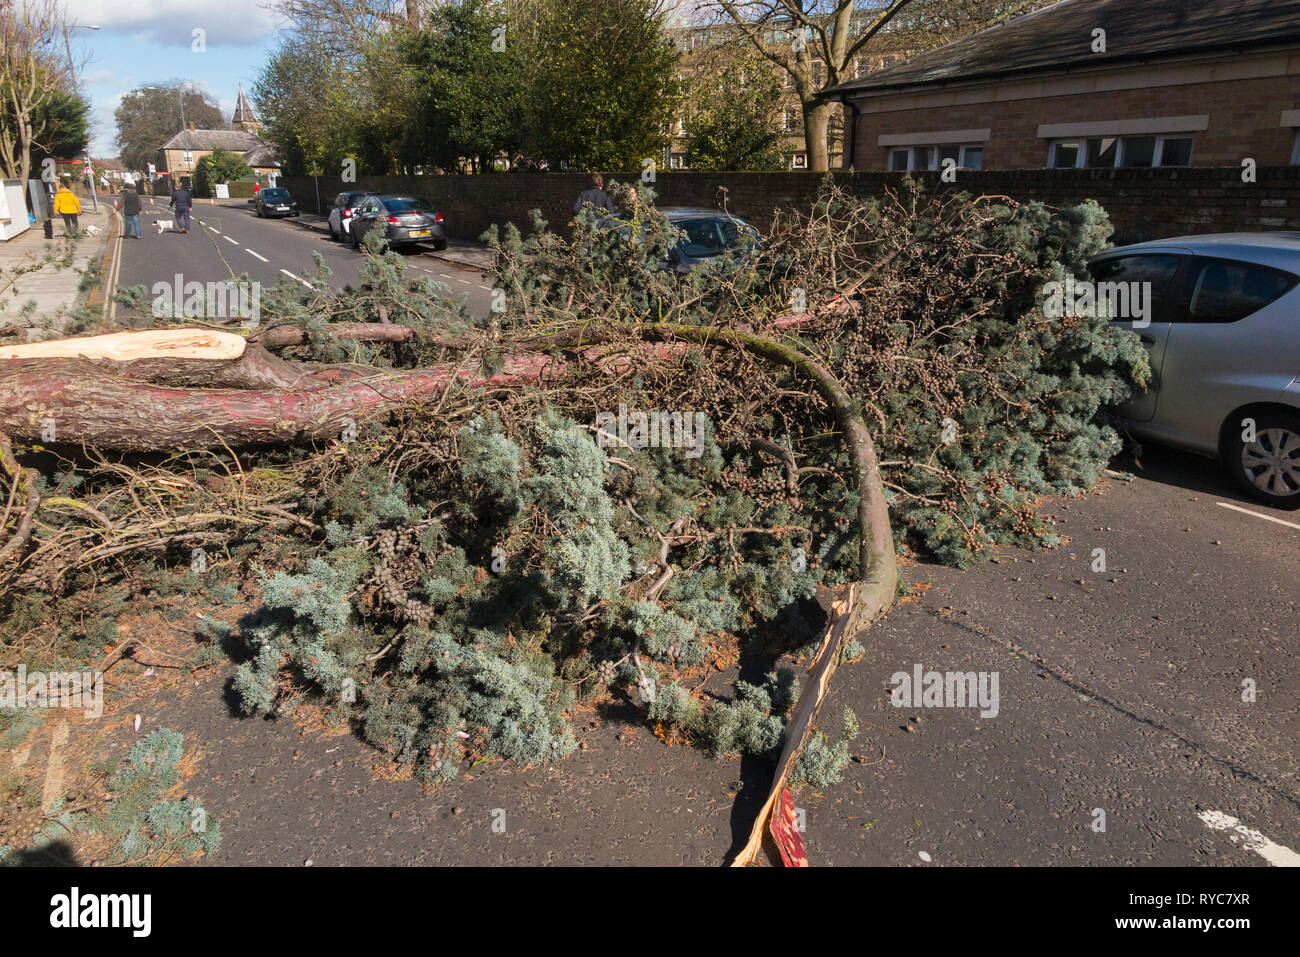 A tall evergreen tree, blown over by high winds, crushes the front of a car and completely blocks the A309 Waldegrave Road for a number of hours. Stock Photo